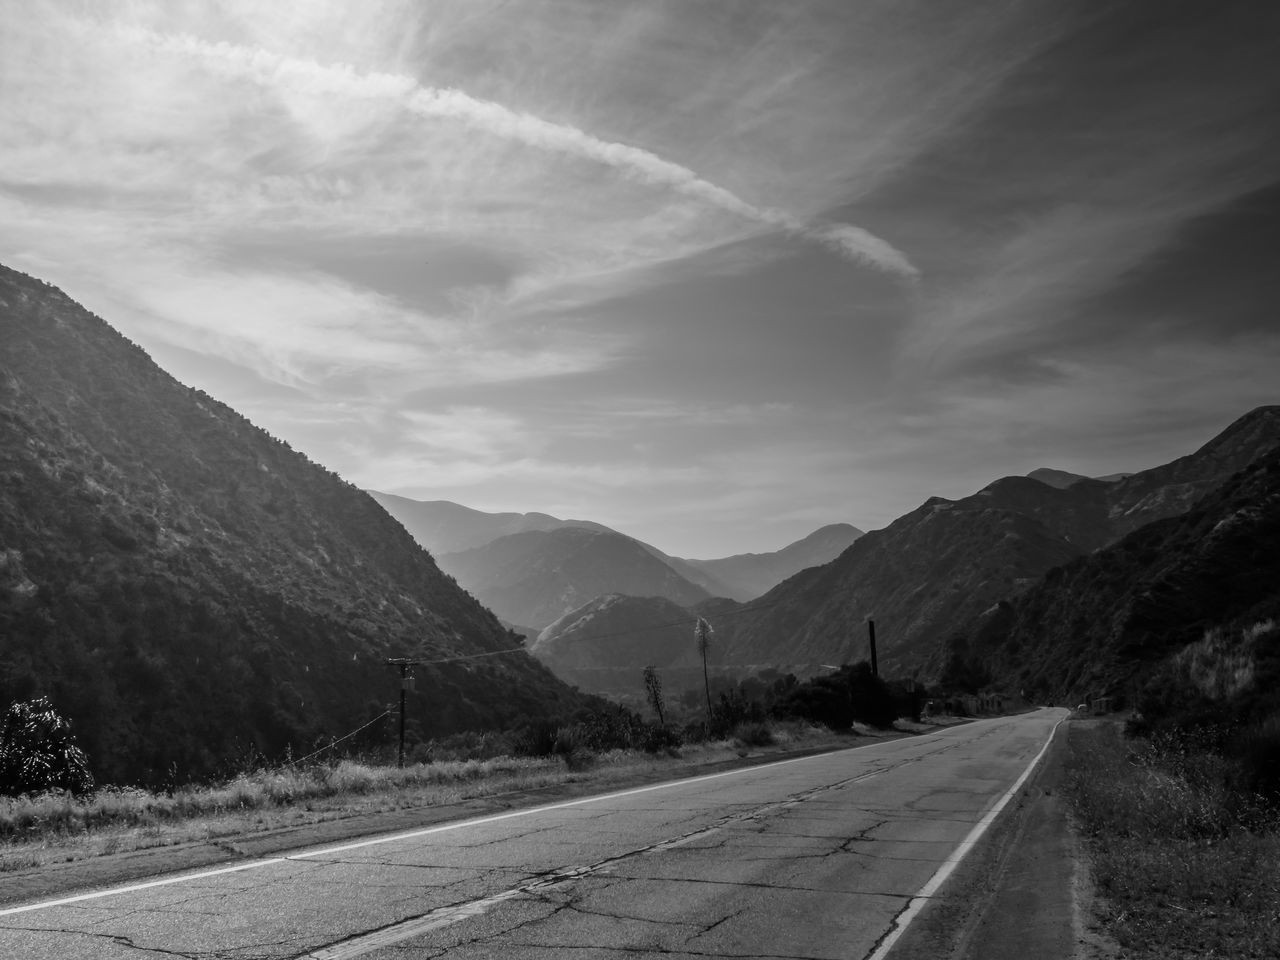 Black and White view down Big Tajunga Canyon Road Angeles National Forest Beauty In Nature Big Tujunga Canyon Day Landscape Mountain Mountain Range Nature No People Outdoors Road Scenics Sky The Way Forward Tranquil Scene Tranquility Transportation White Line Winding Road